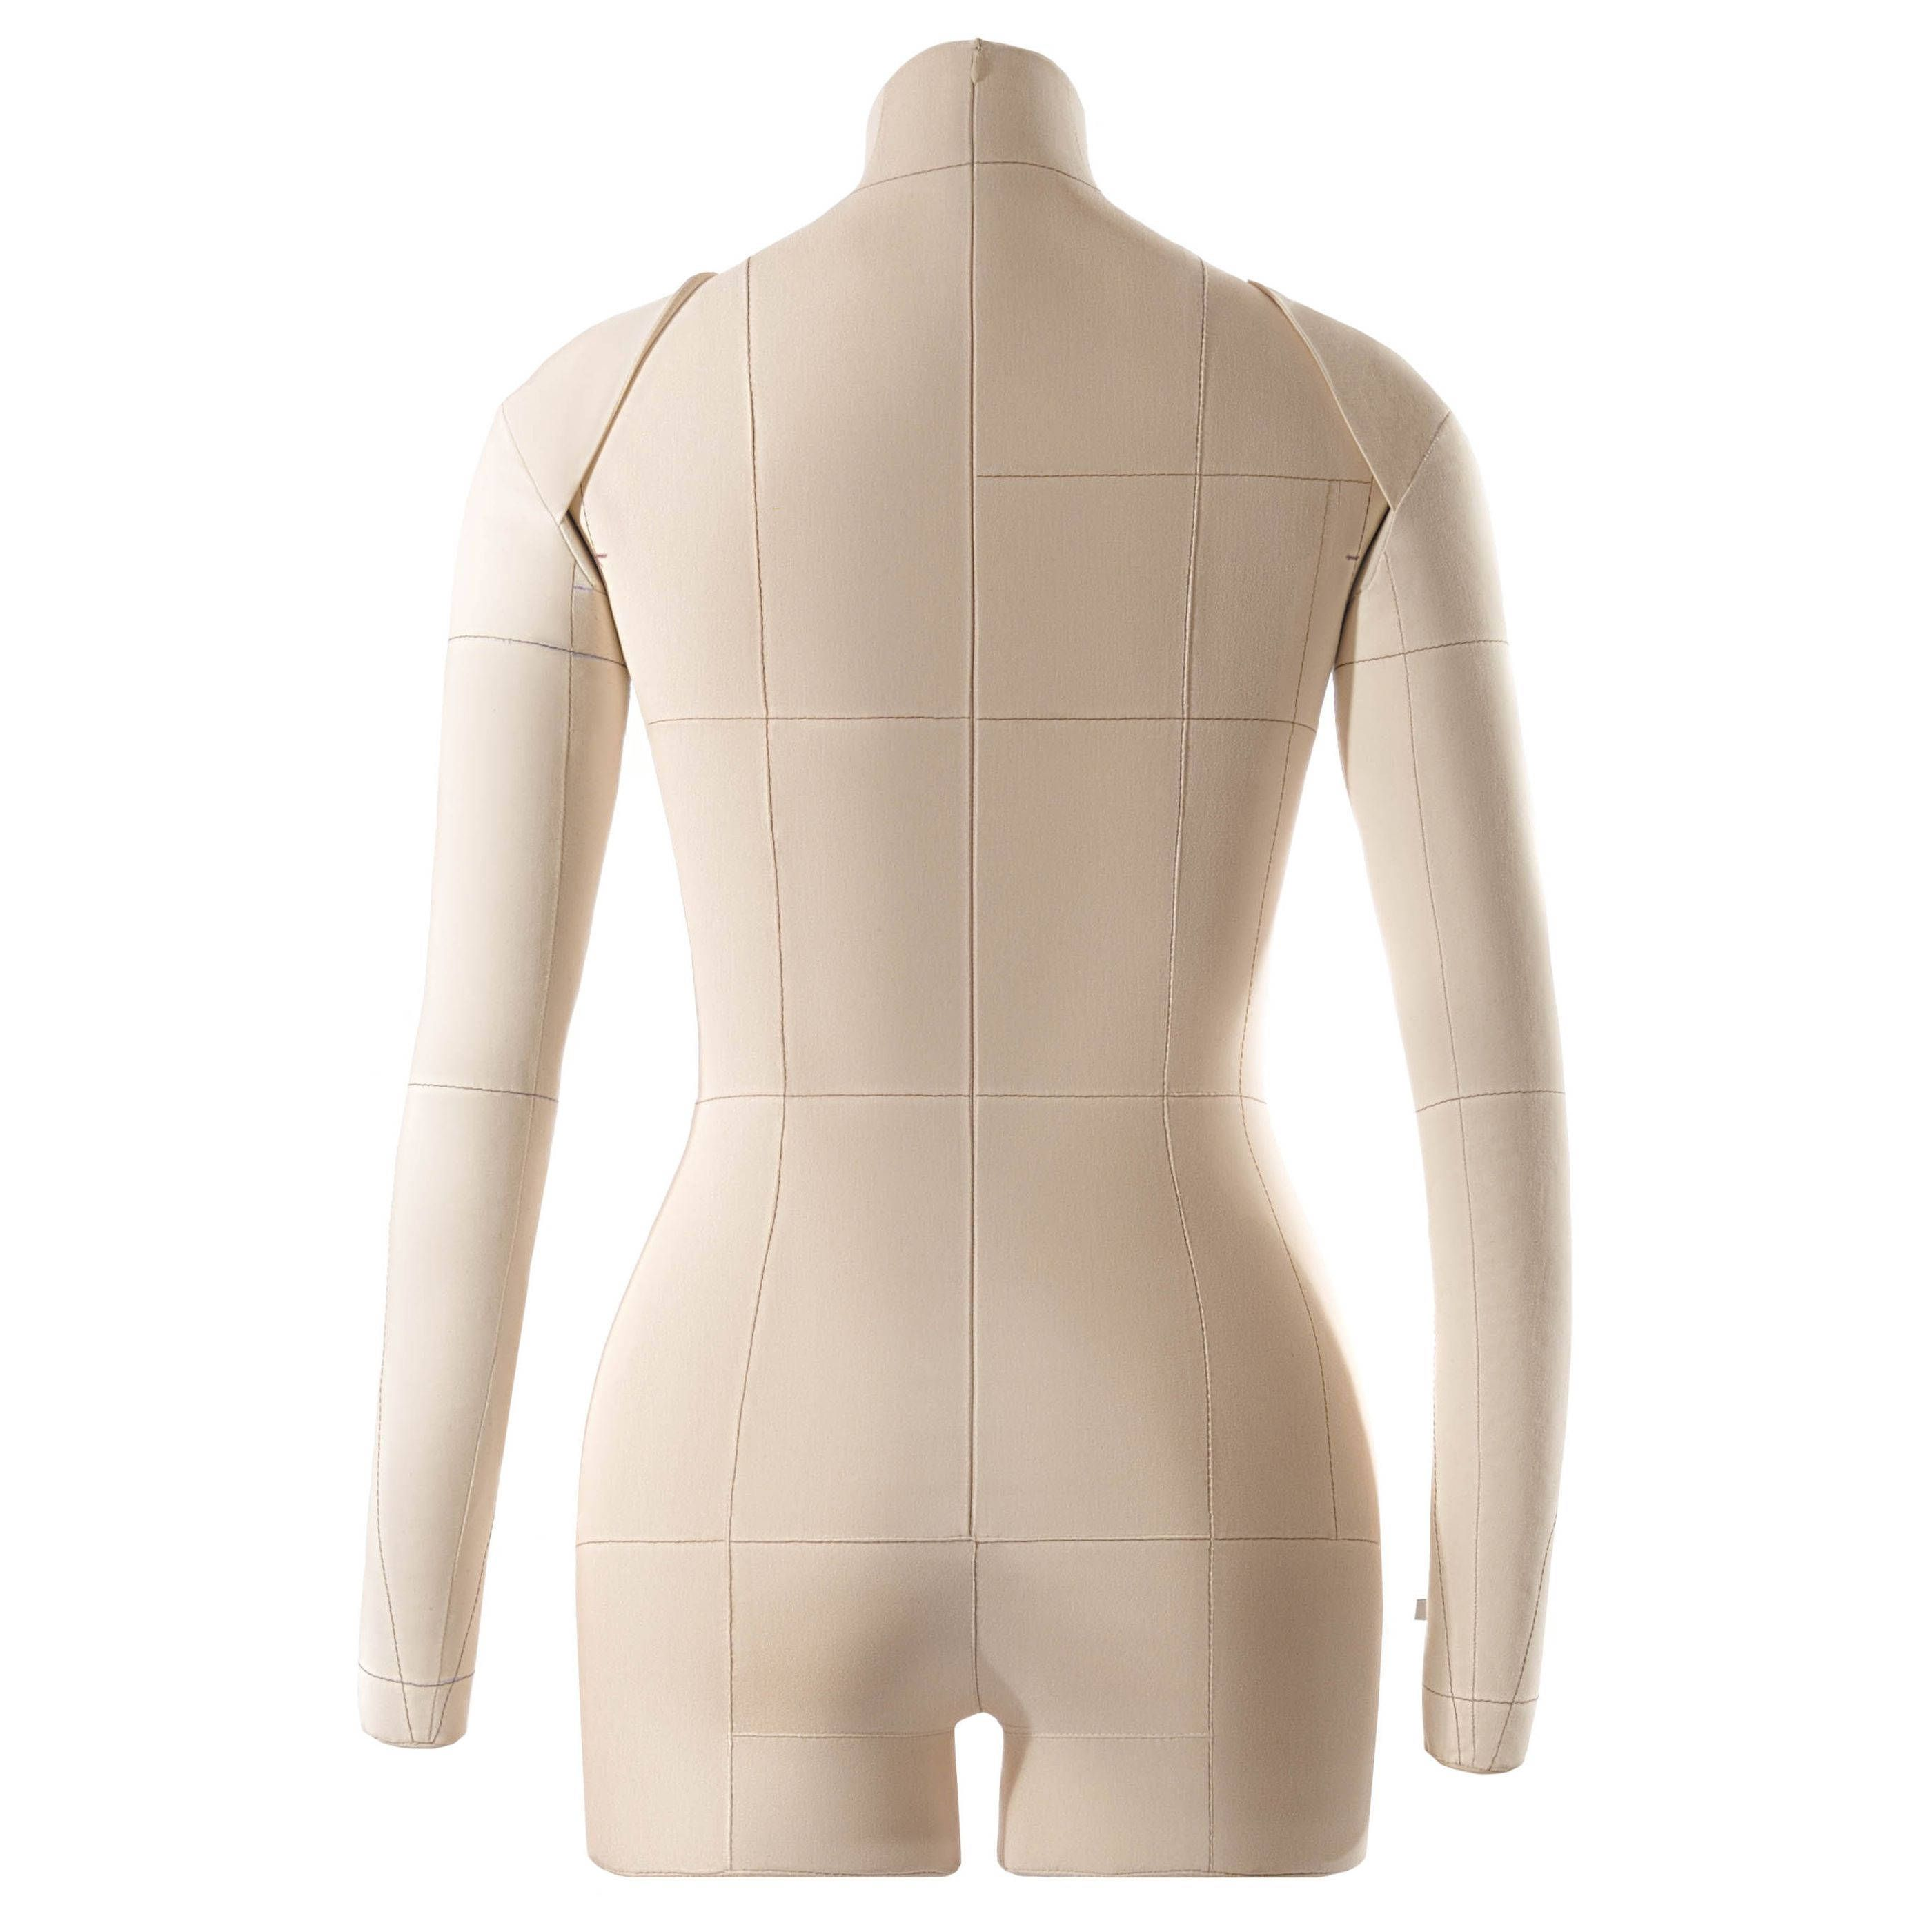 Eva professional female soft fully pinnable tailor form